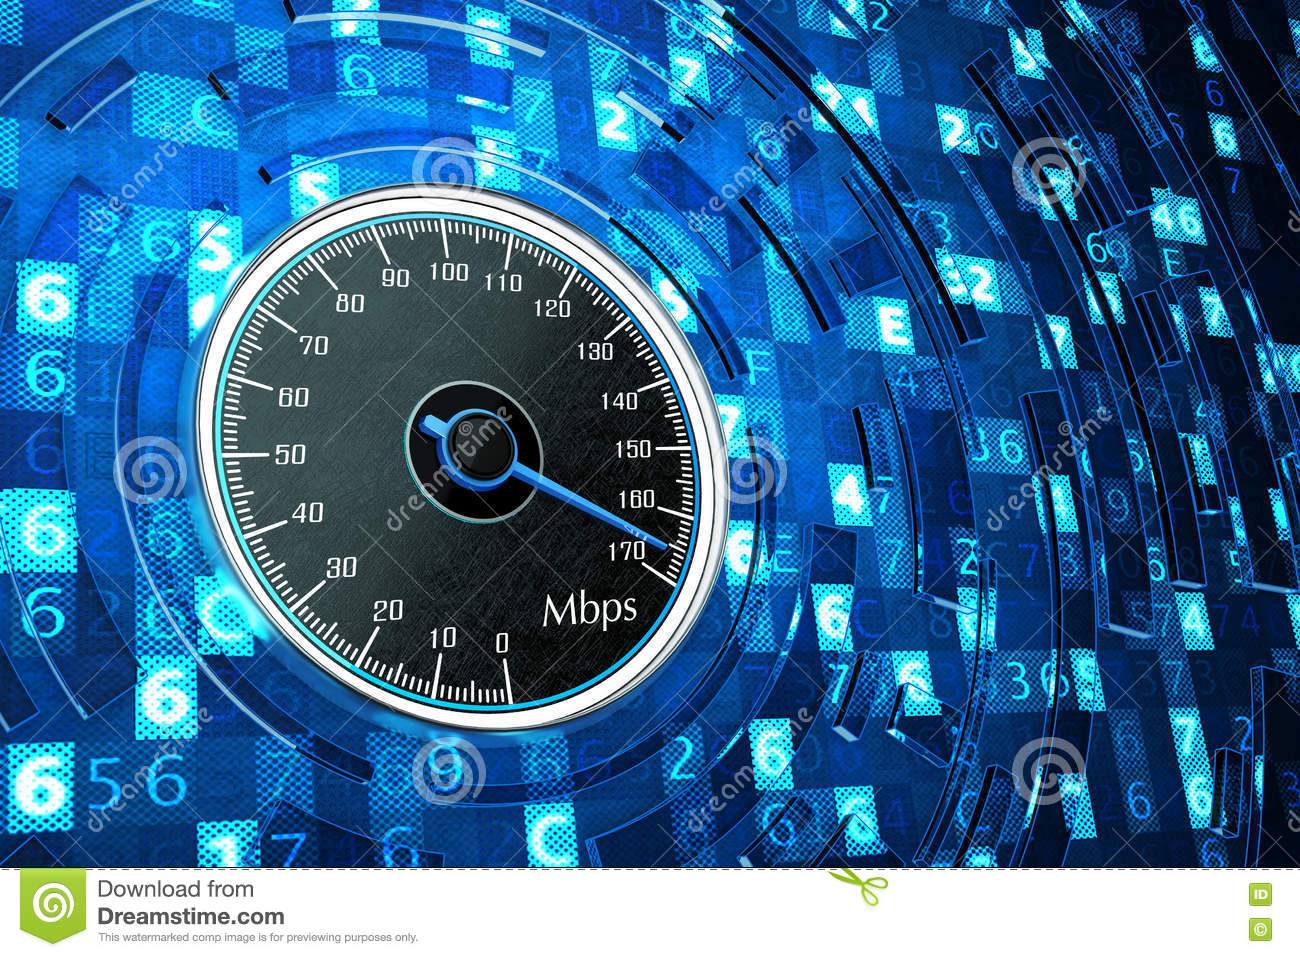 Performance Technology: High Speed Internet Connection, Network Performance And